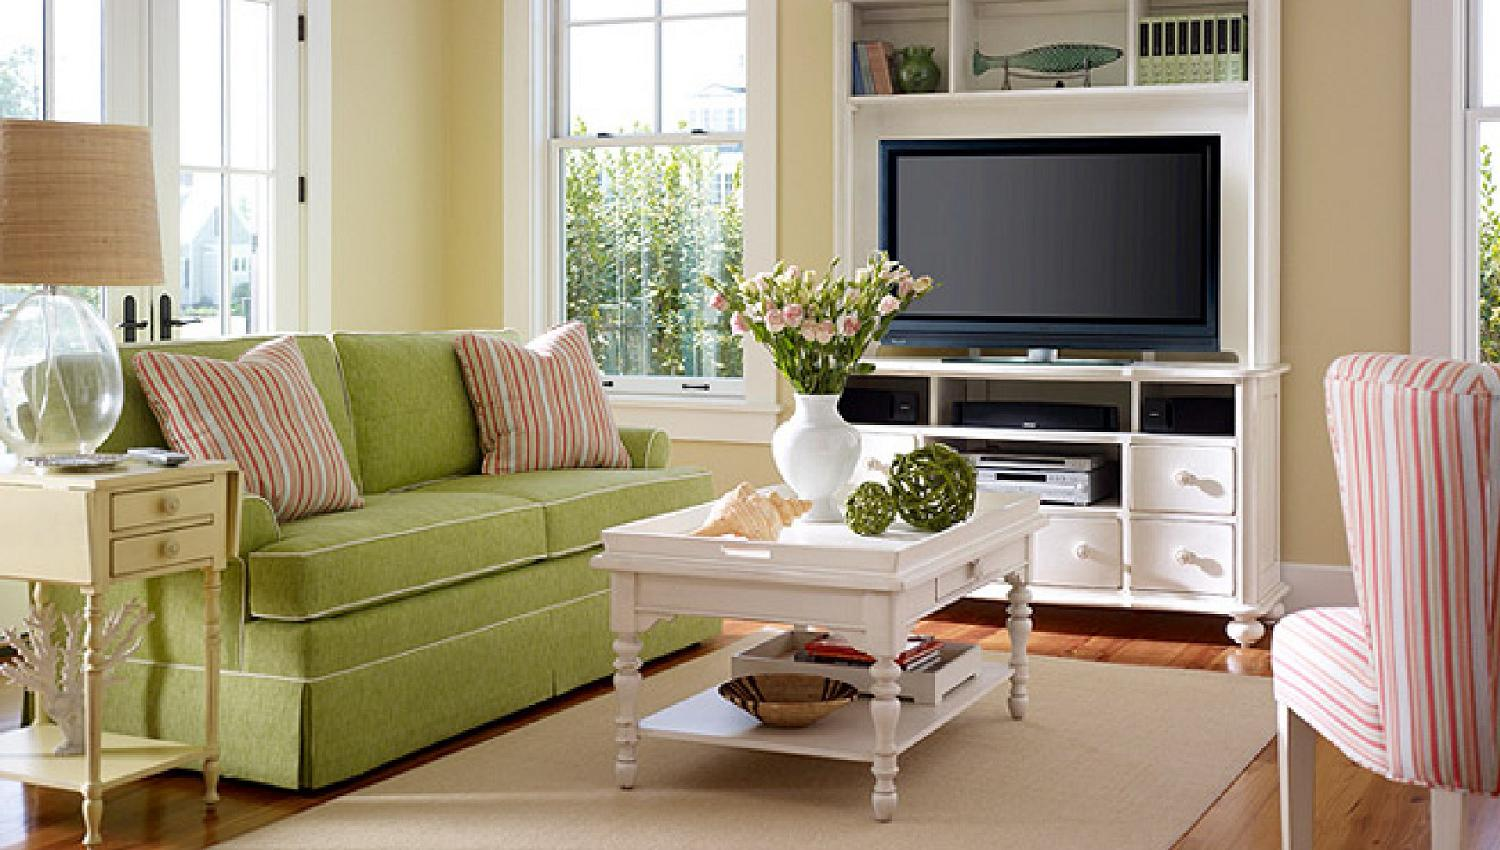 Small Country Living Room Decorating